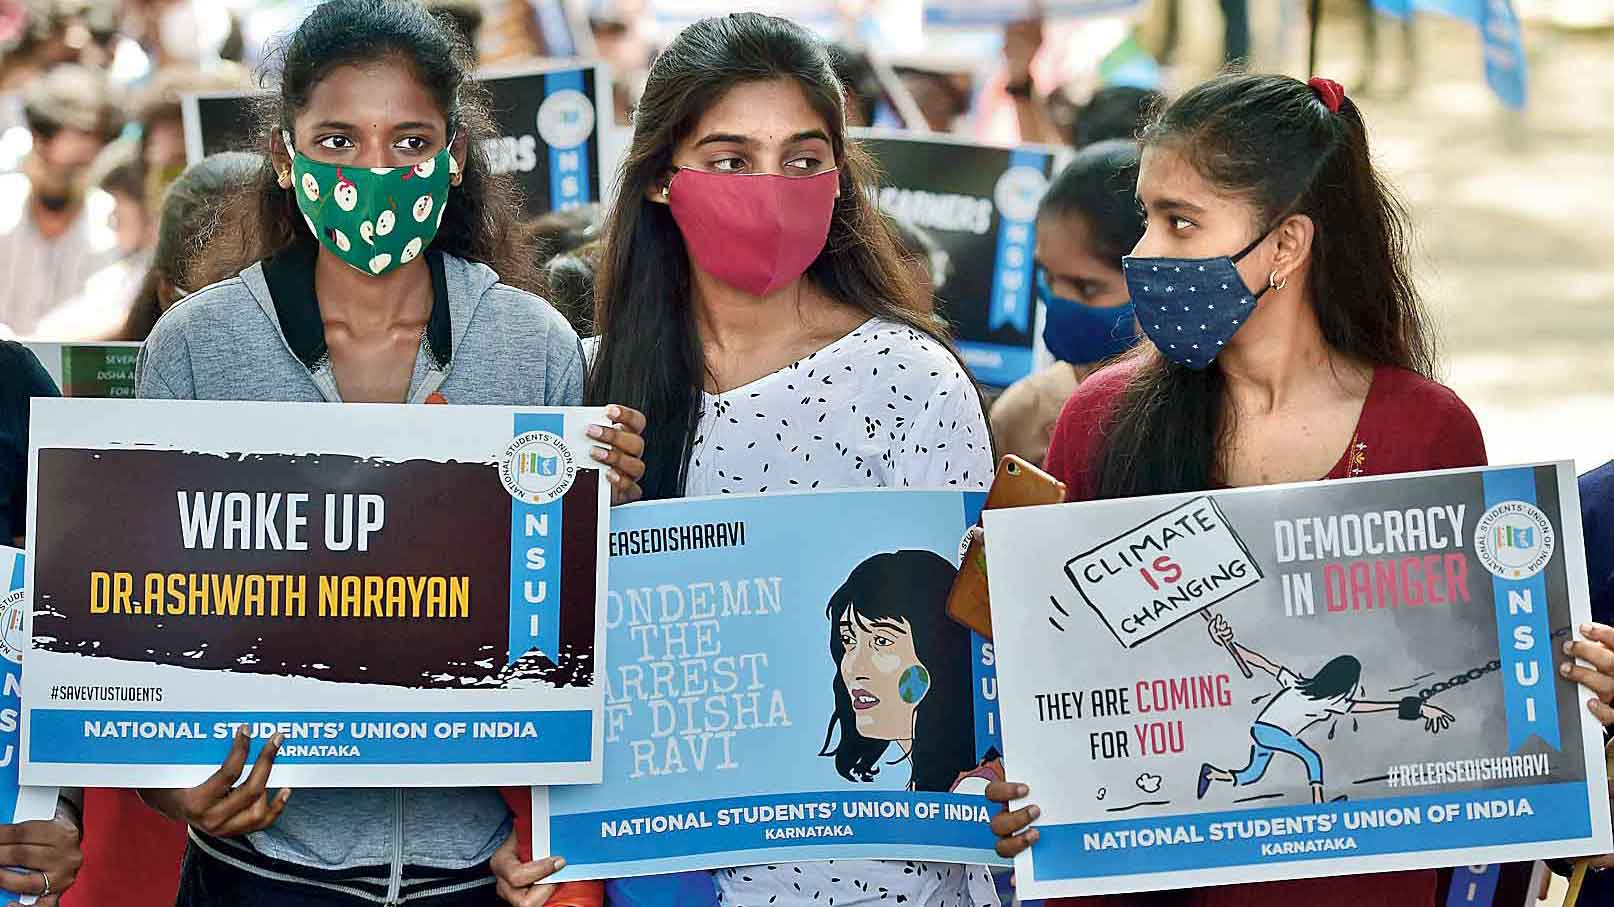 Students and members of NSUI protest against Disha's arrest in Bangalore on Tuesday.